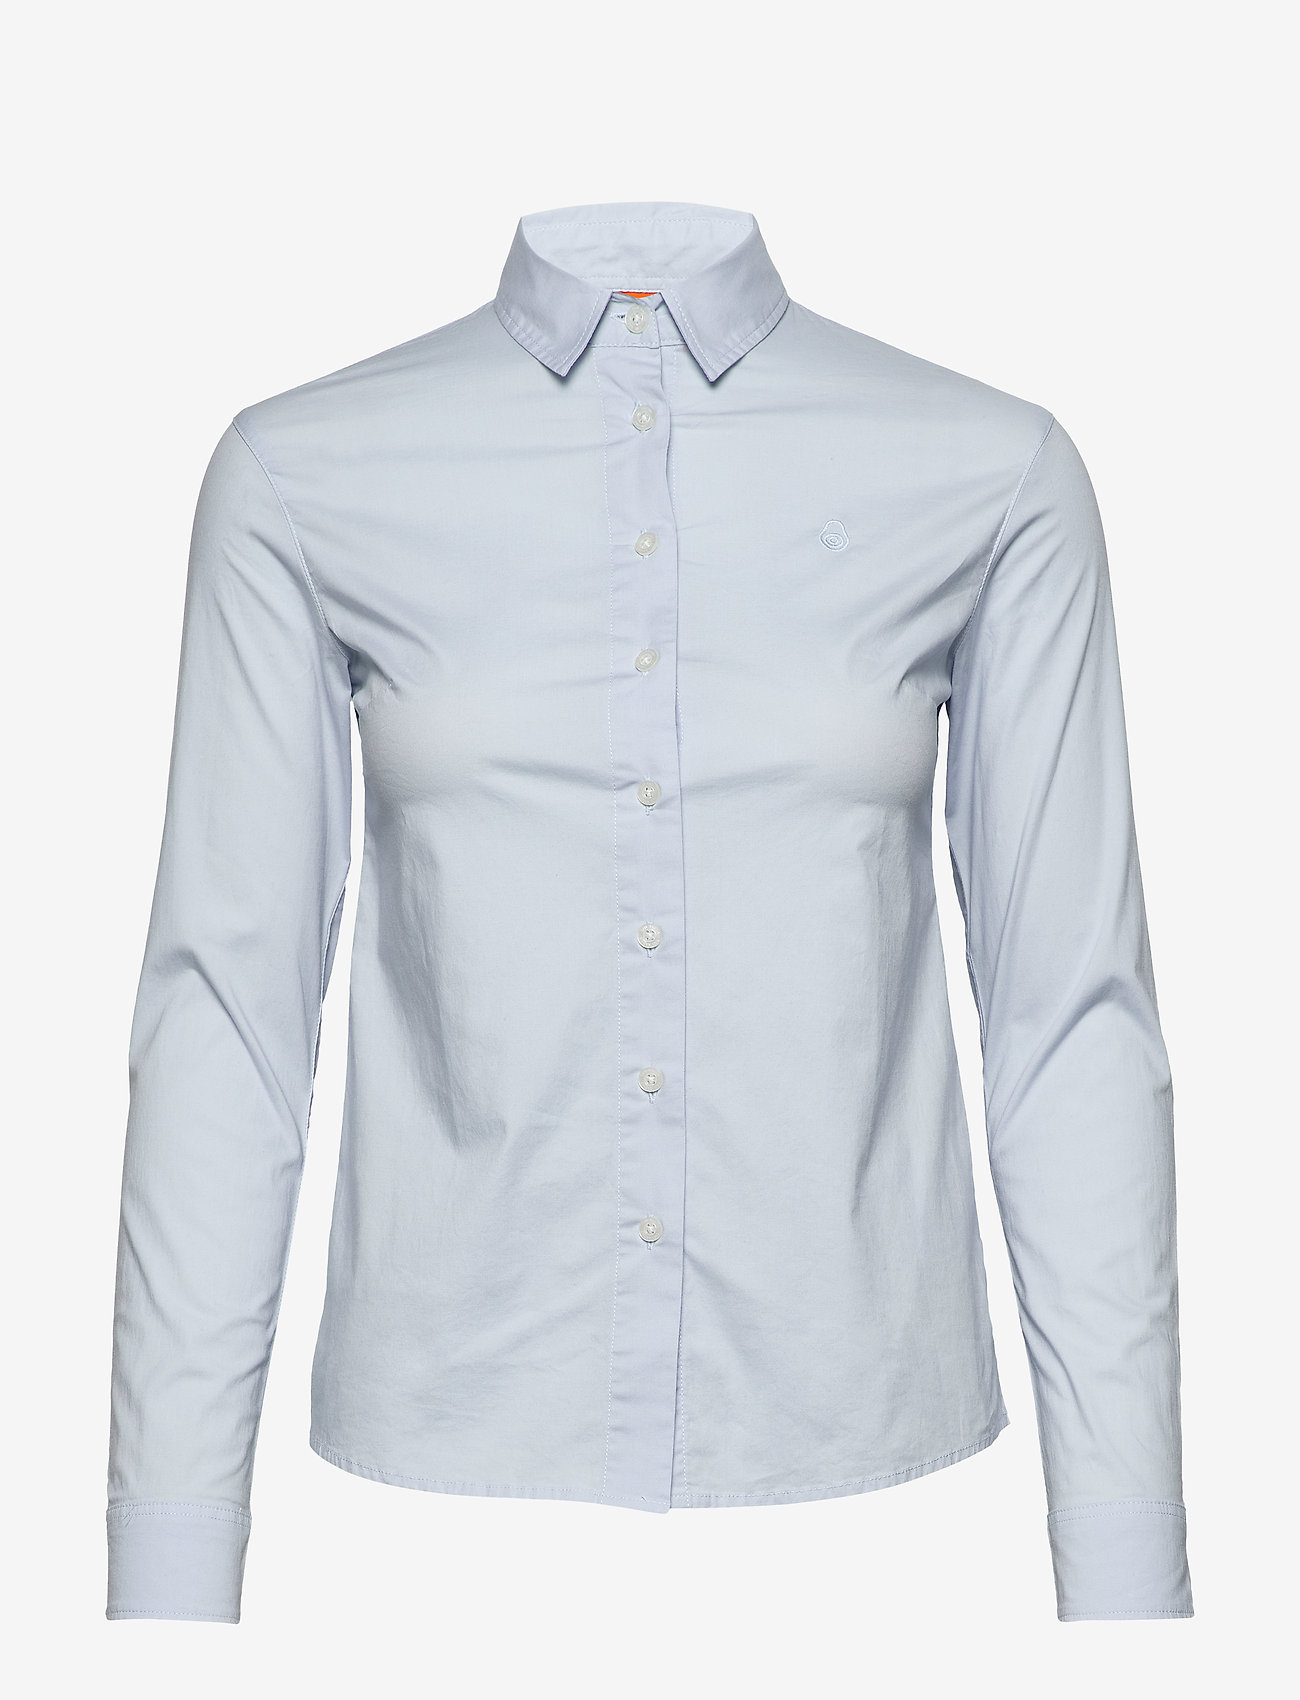 Sail Racing - W GALE SHIRT - long-sleeved shirts - light blue - 0